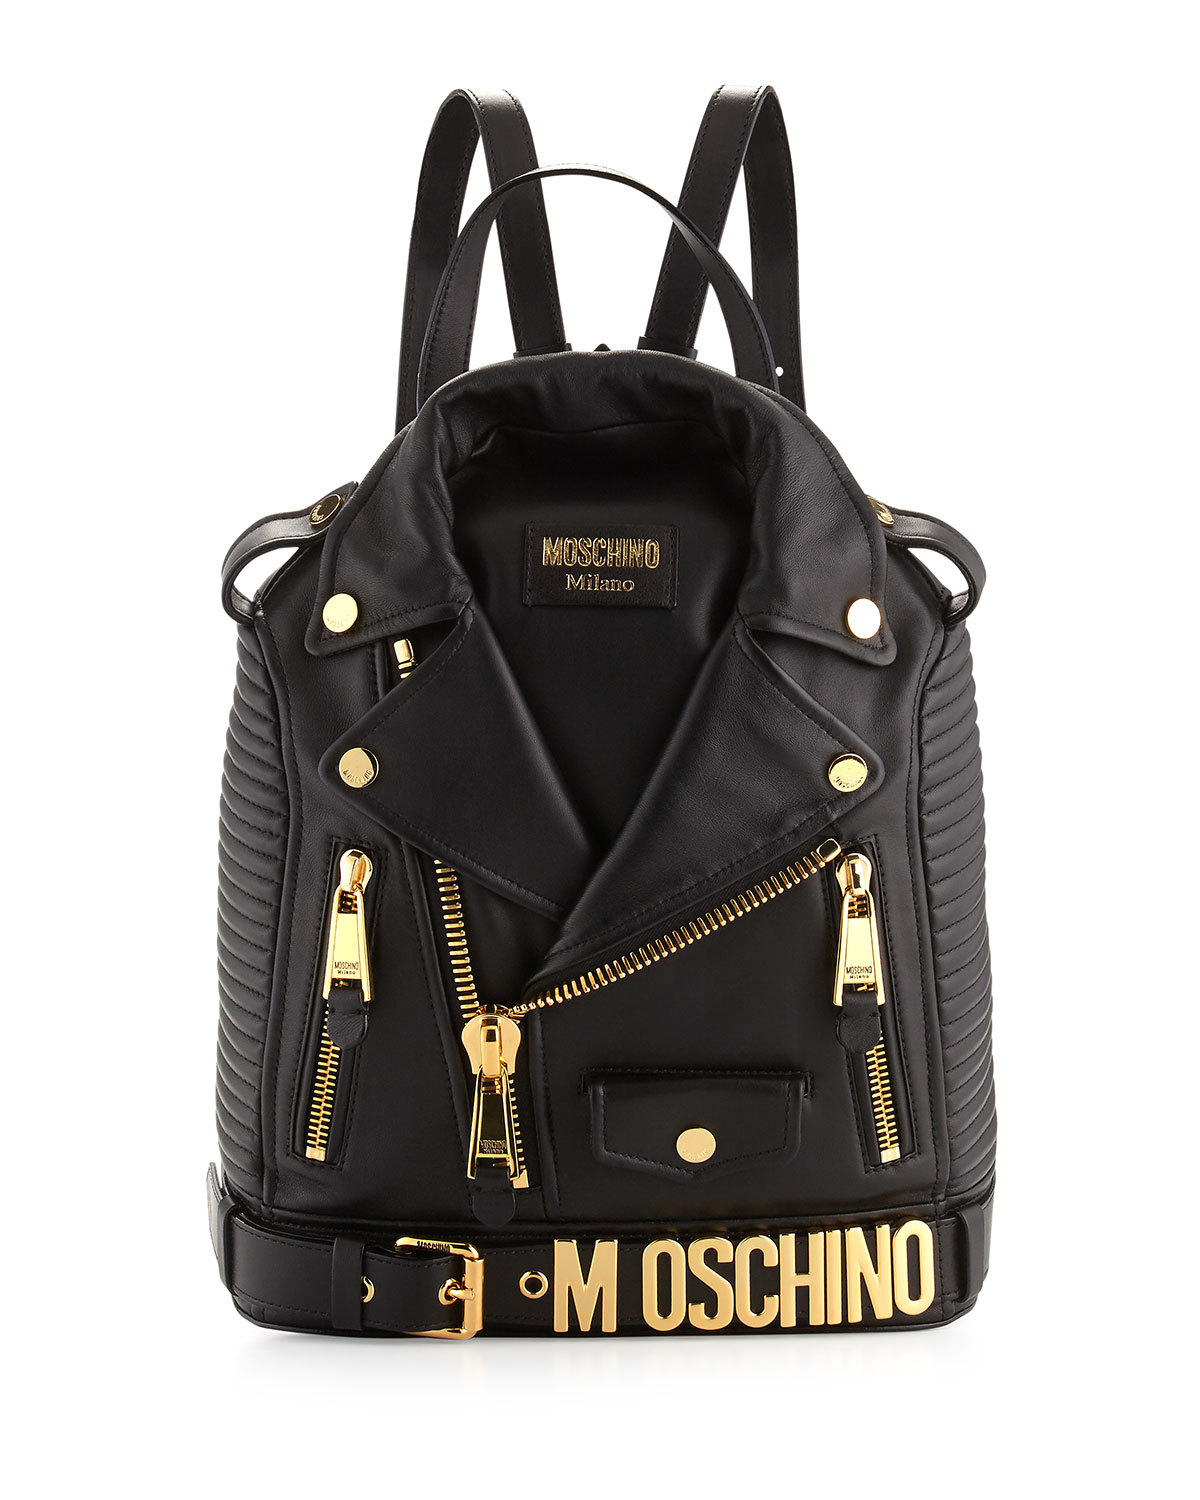 Jacket Backpack Moschino Lambskin Moto Jacket Backpack In Black Lyst